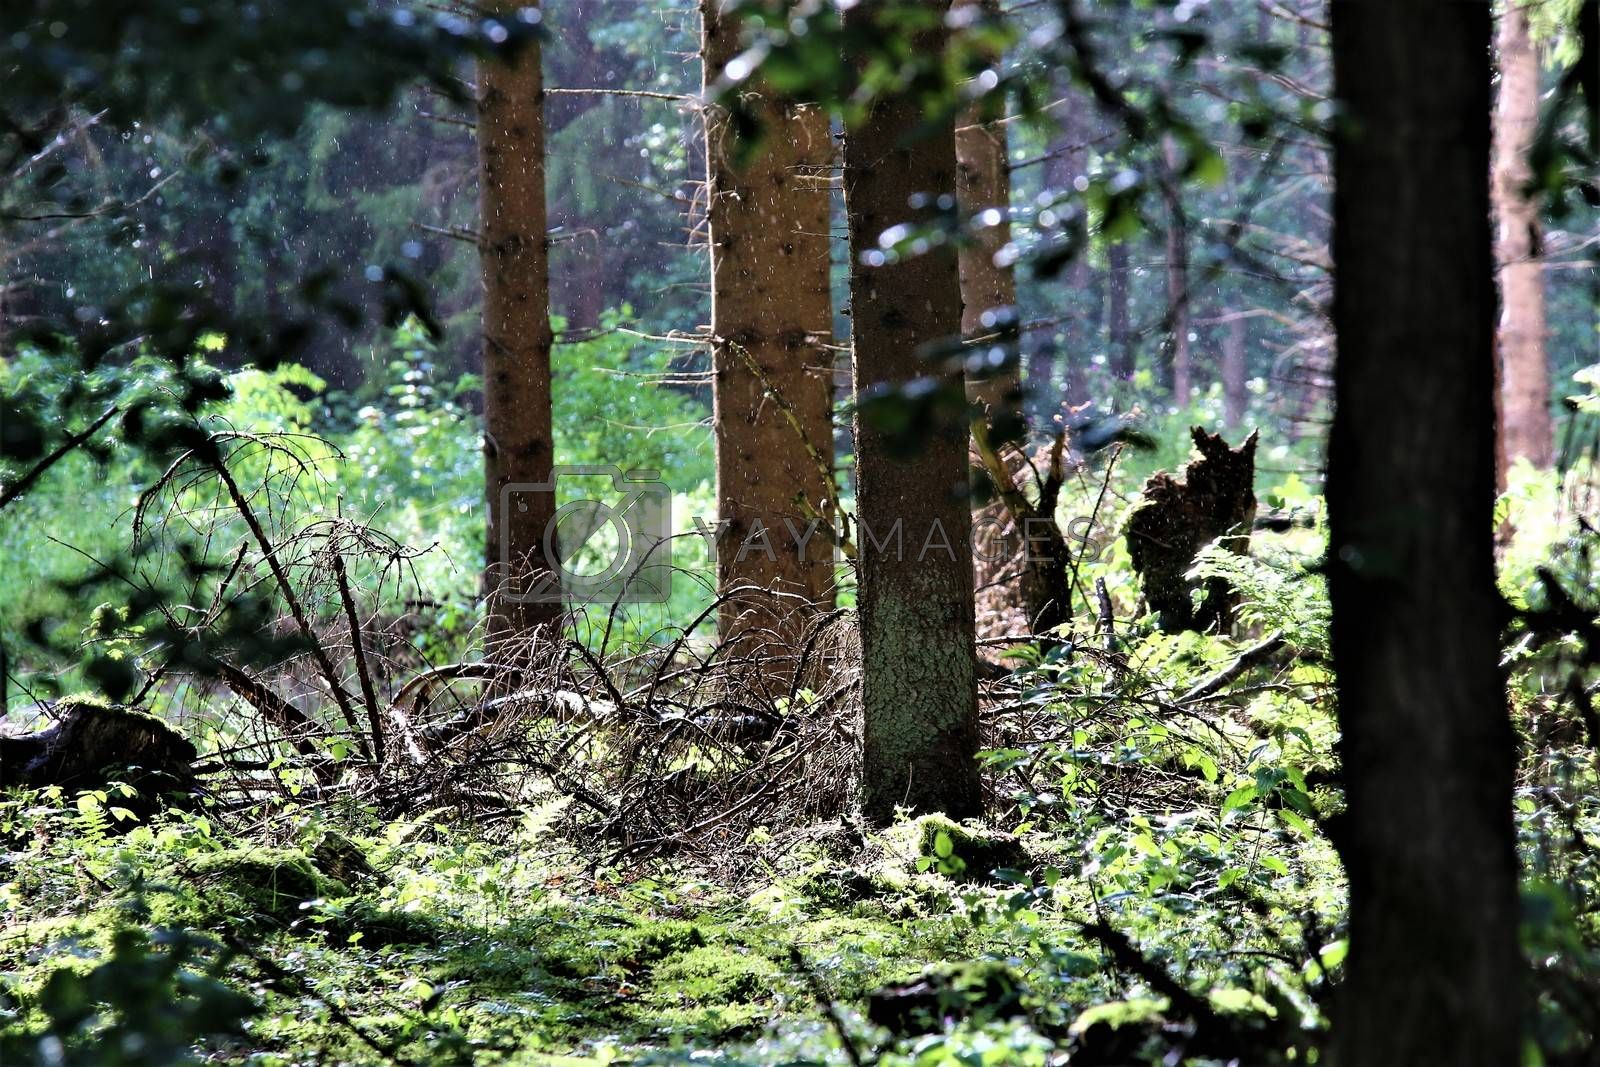 View into the forest with dead branches on the ground of a clearing in sunshine and light rain